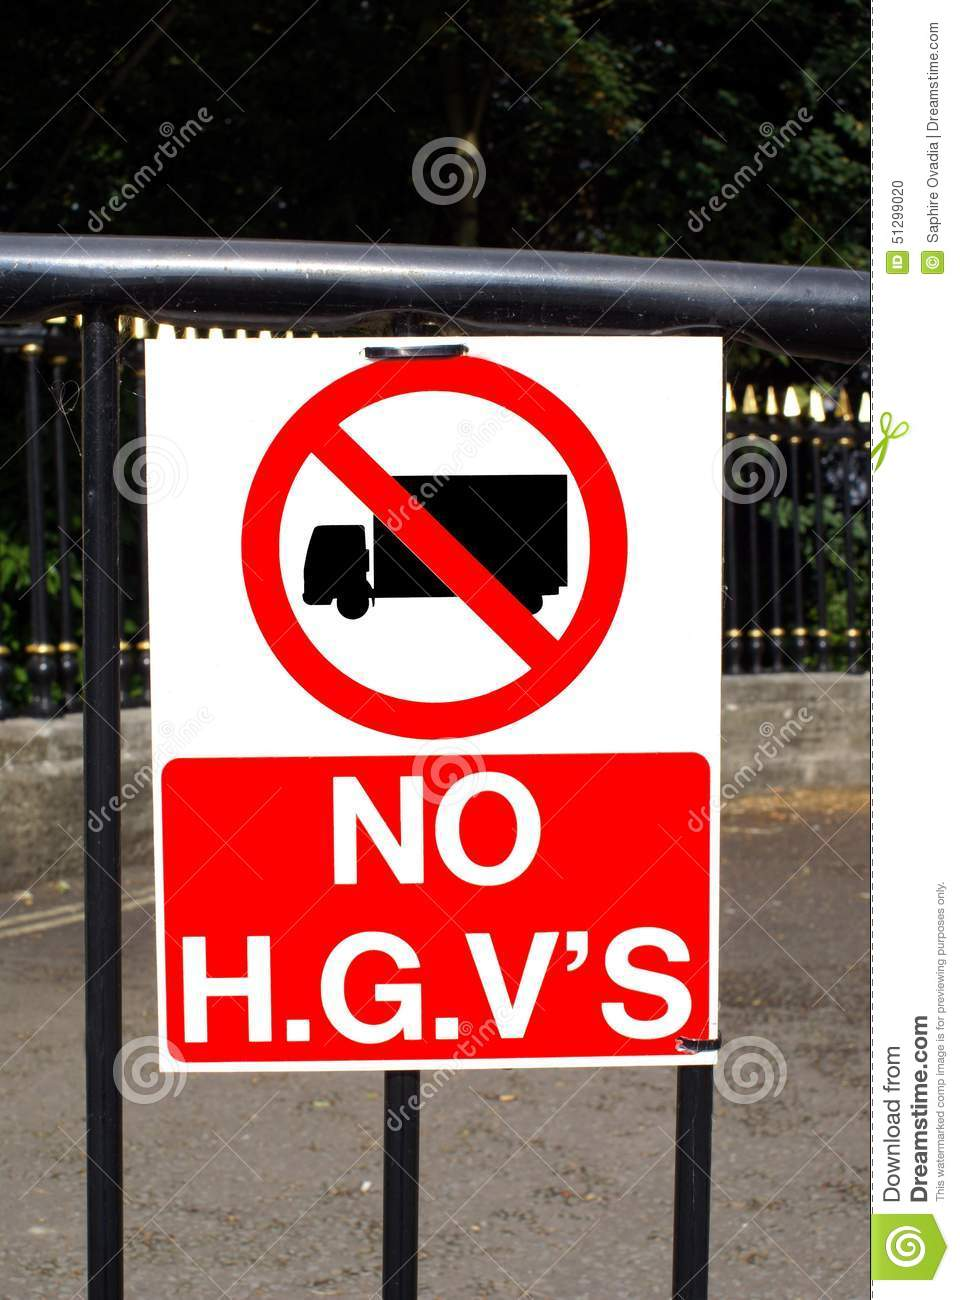 no h g v 39 s sign no entry for heavy goods lorries stock. Black Bedroom Furniture Sets. Home Design Ideas